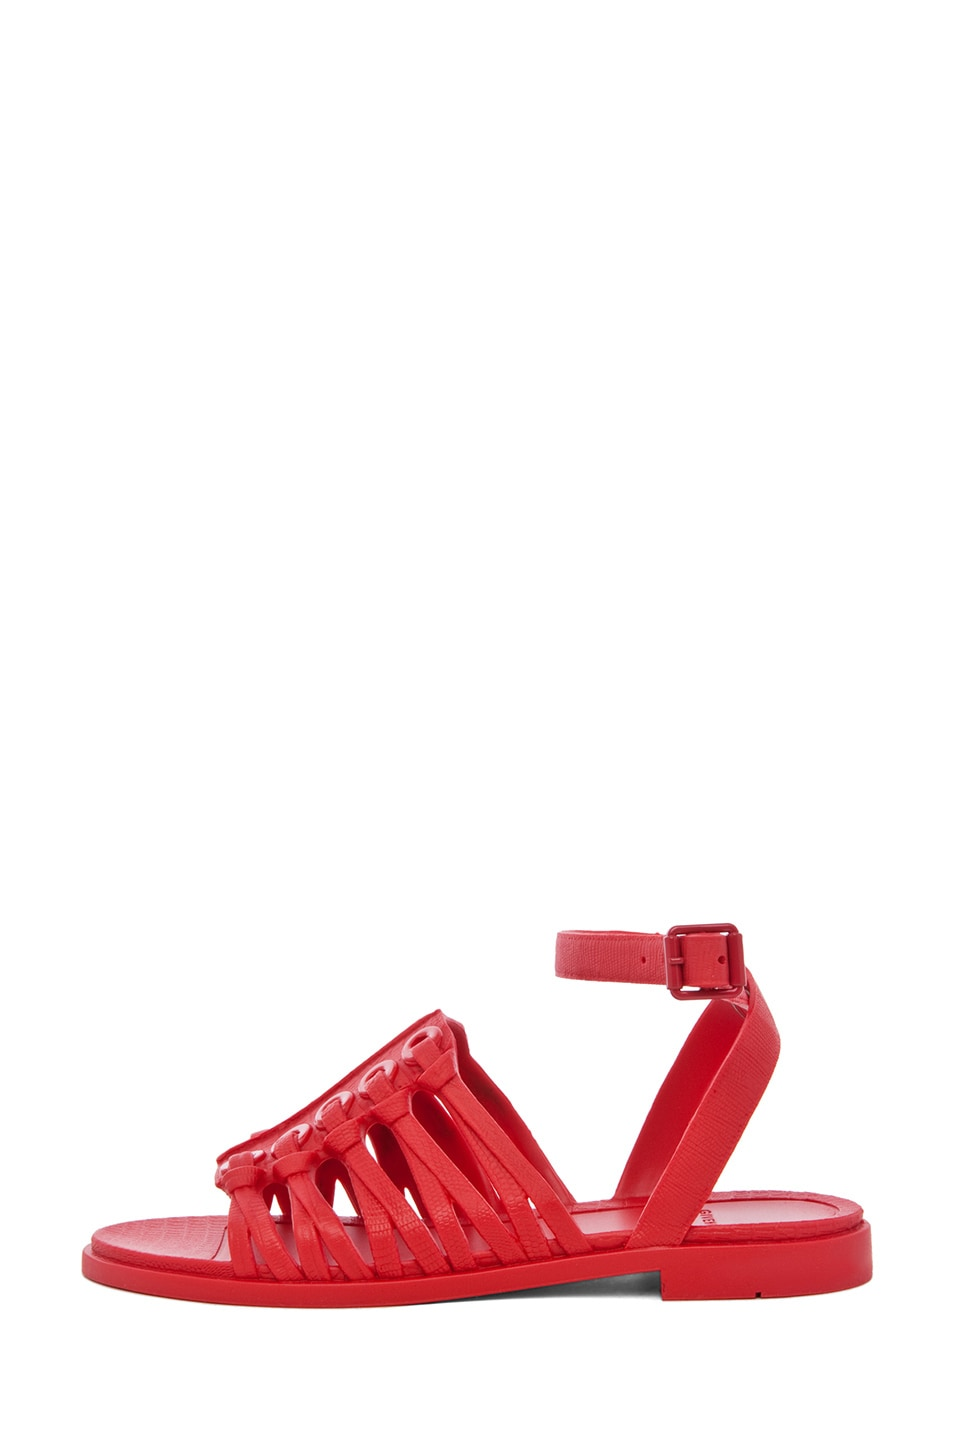 Image 1 of GIVENCHY Gladiator Sandal in Red